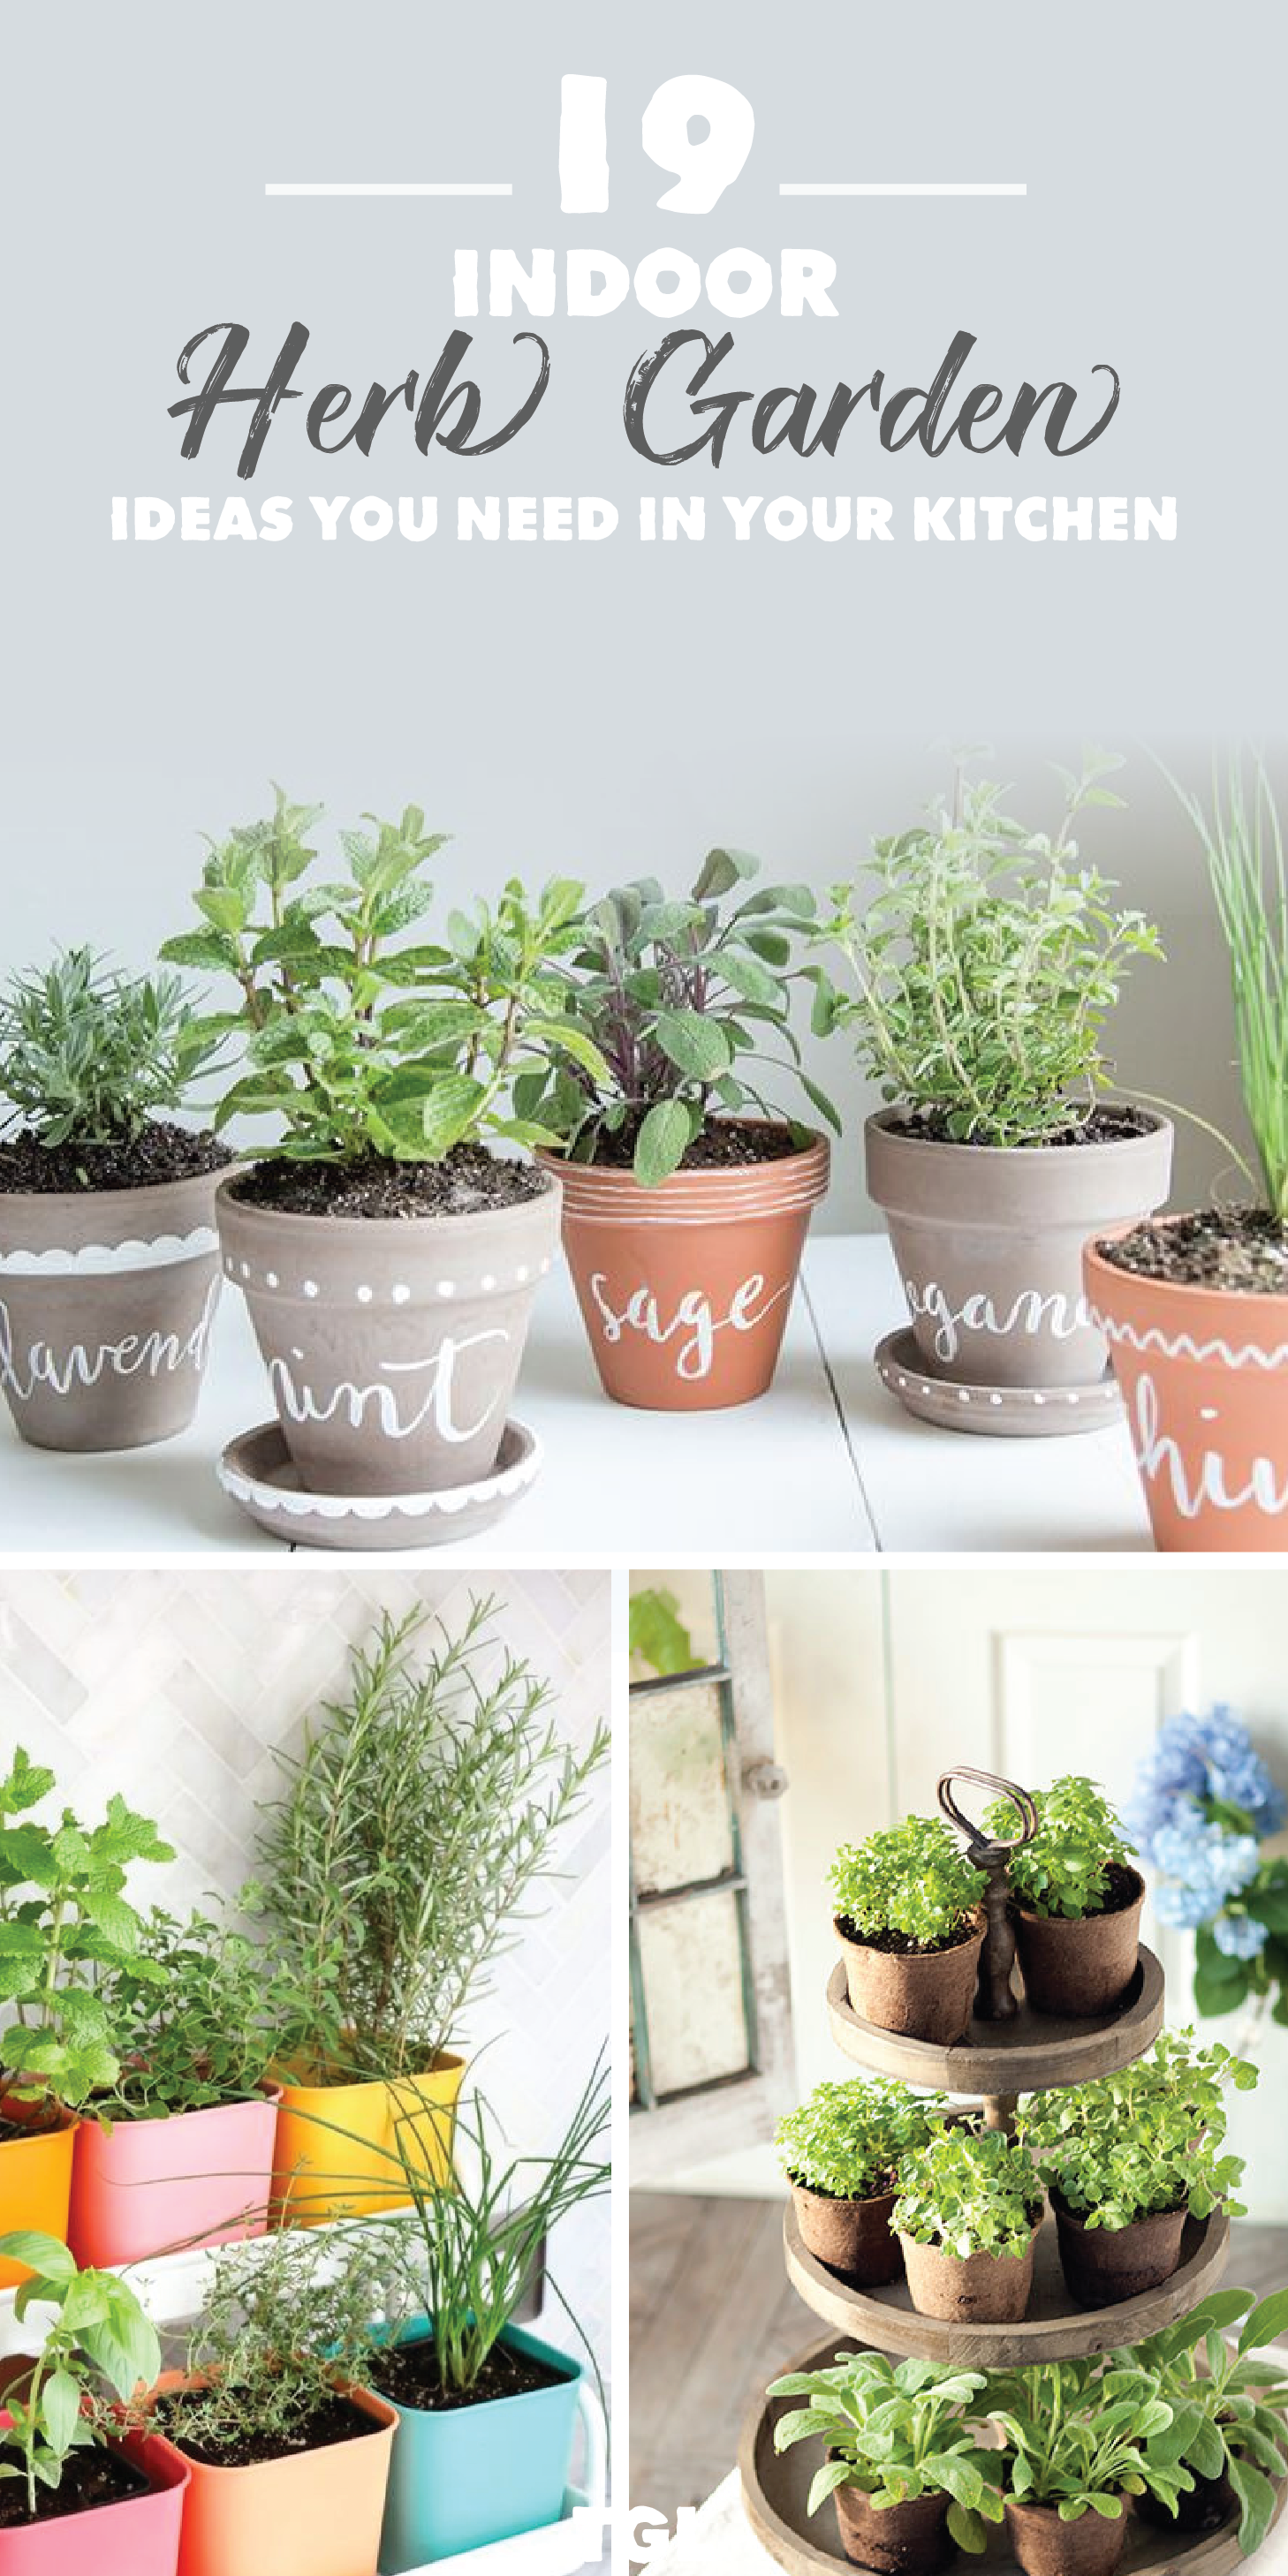 19 Easy Indoor Herb Garden Ideas To Add To Your Kitchen For Year